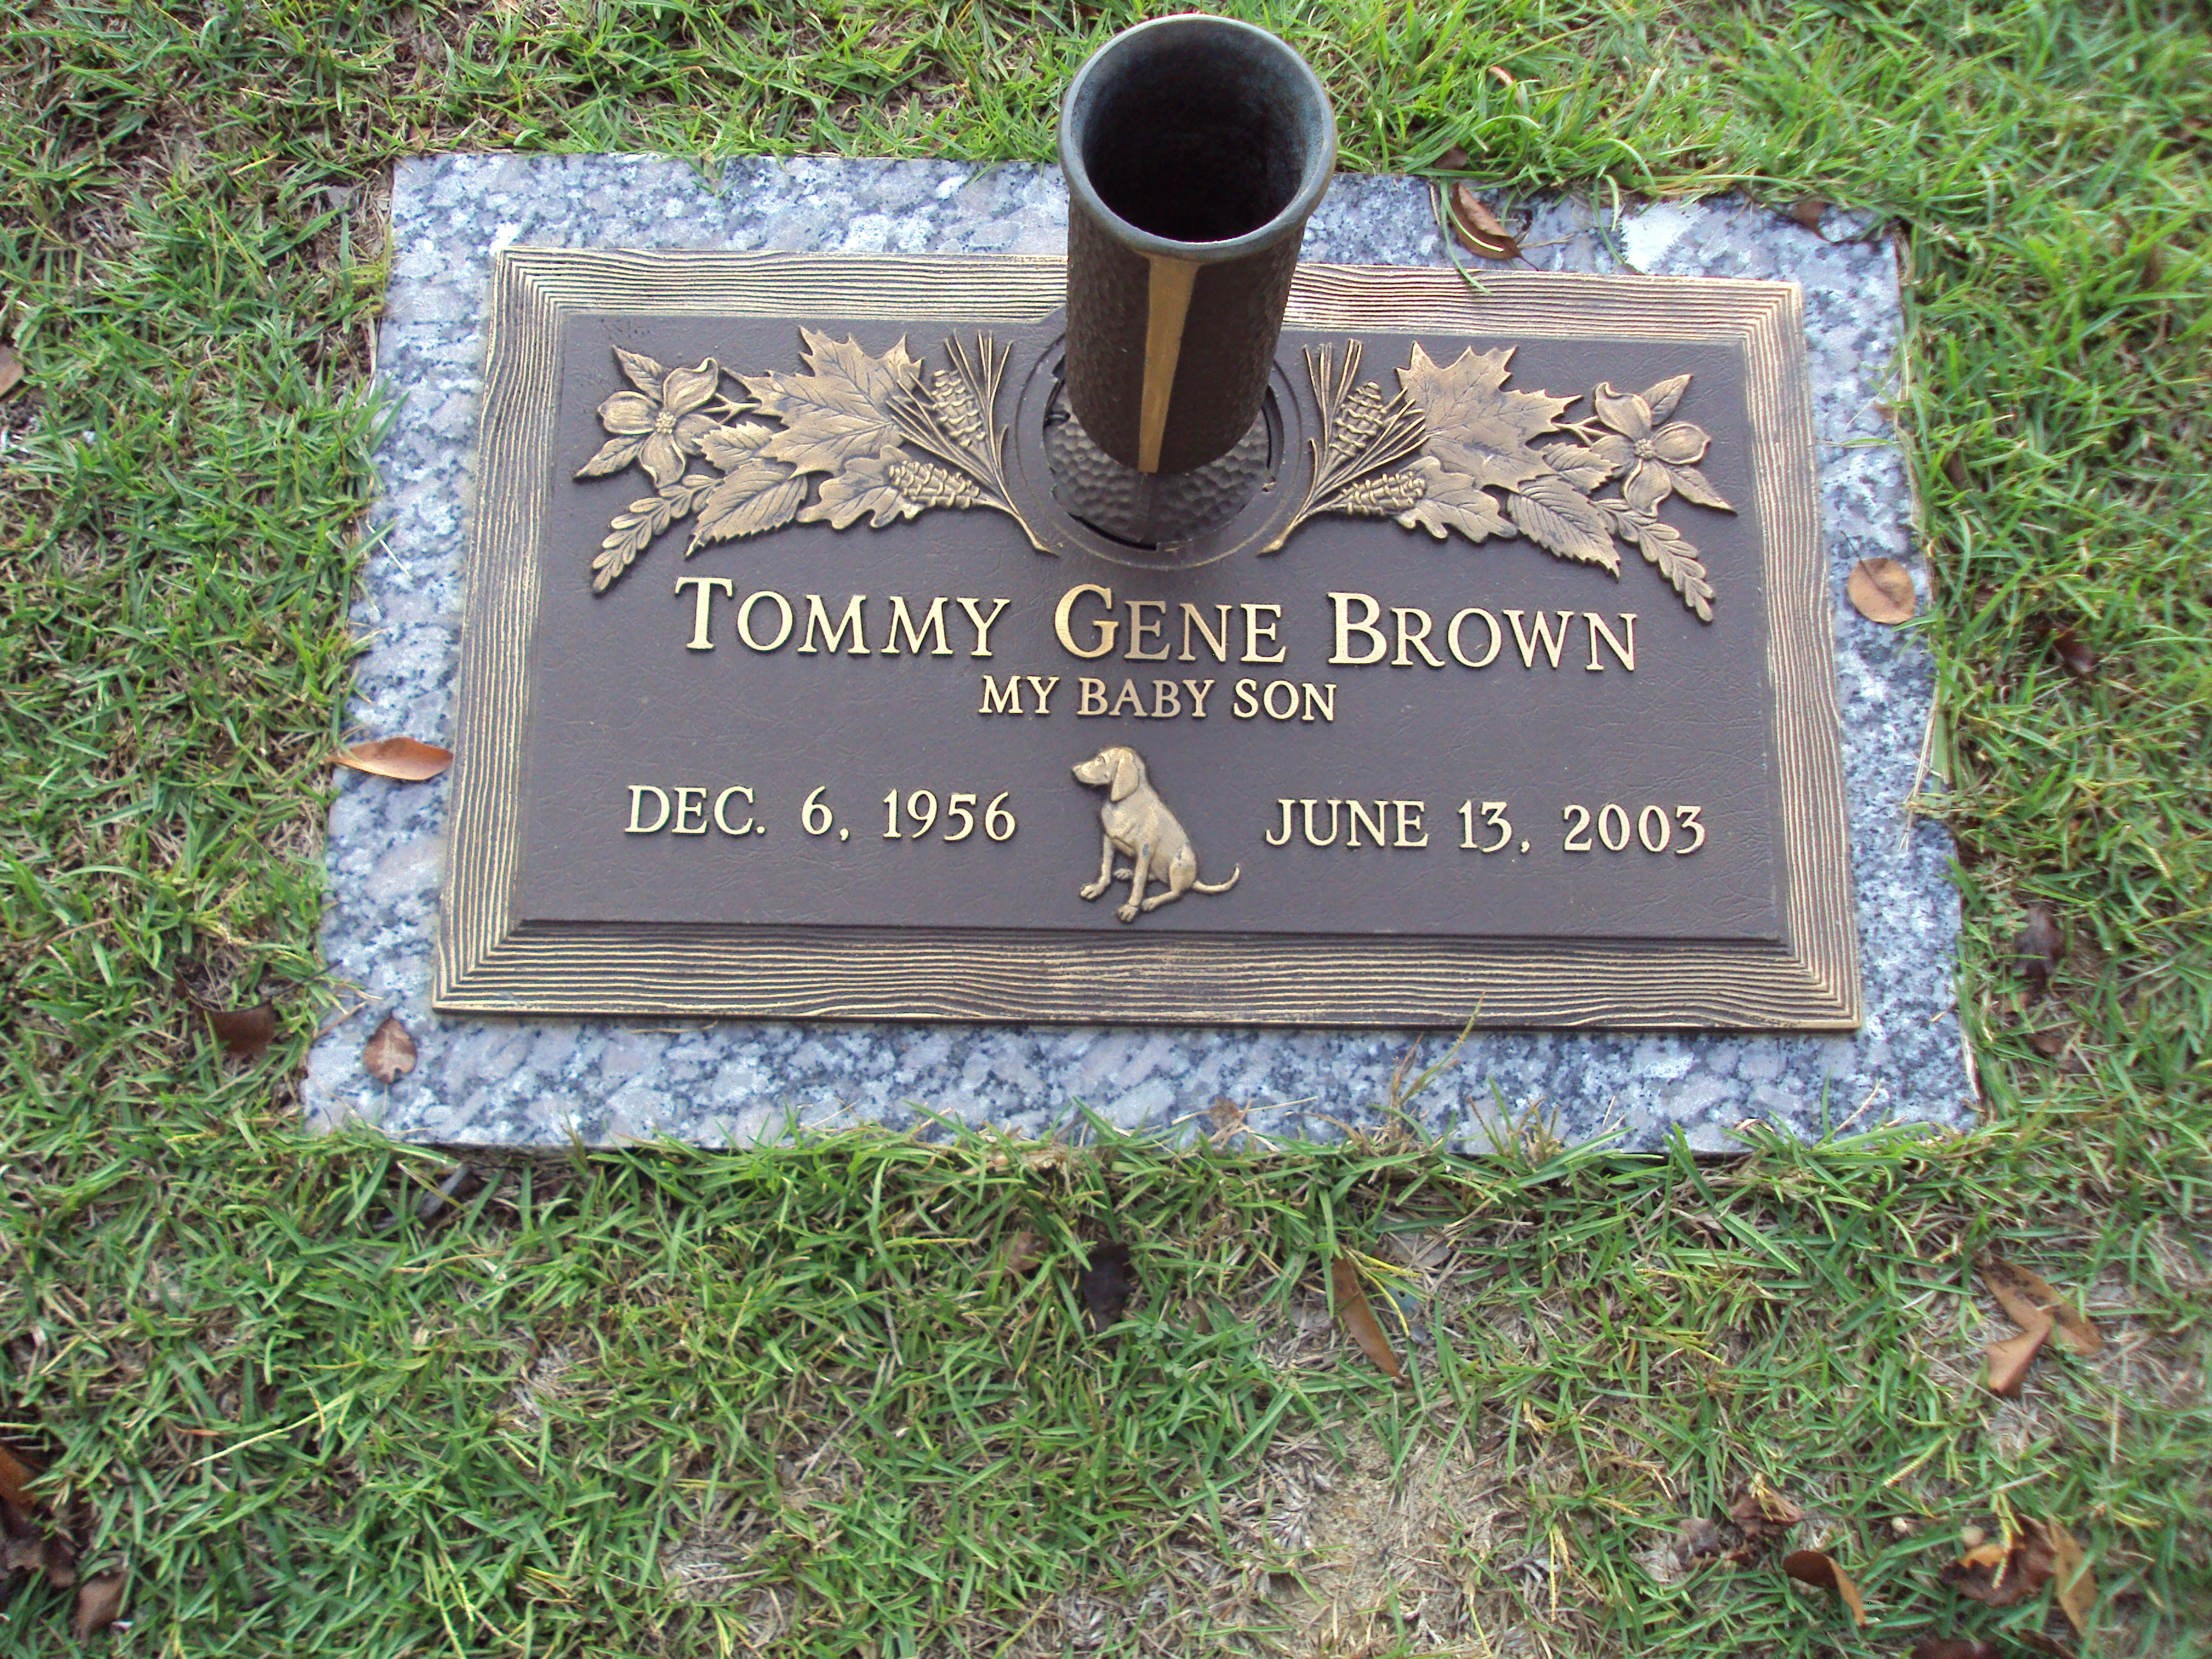 Tommy Gene Brown